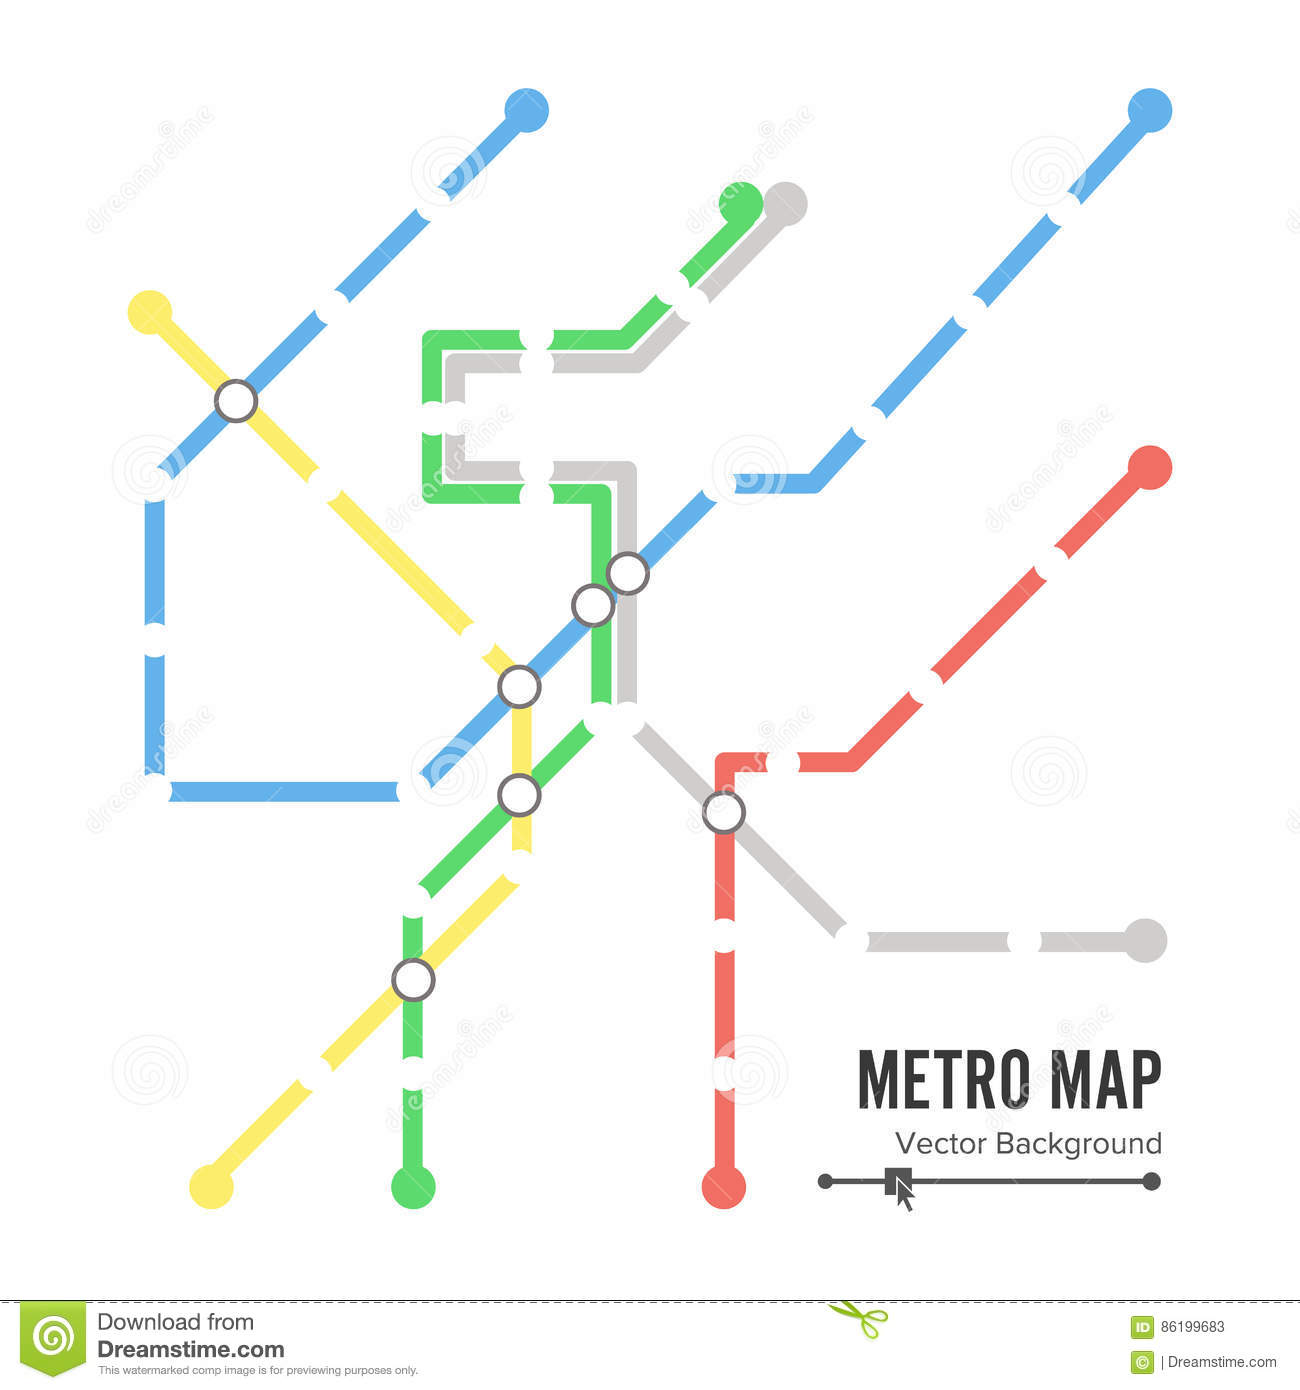 Subway Stations Map.Metro Map Vector Subway Map Design Template Colorful Background With Stations Stock Vector Illustration Of Stage Schem 86199683